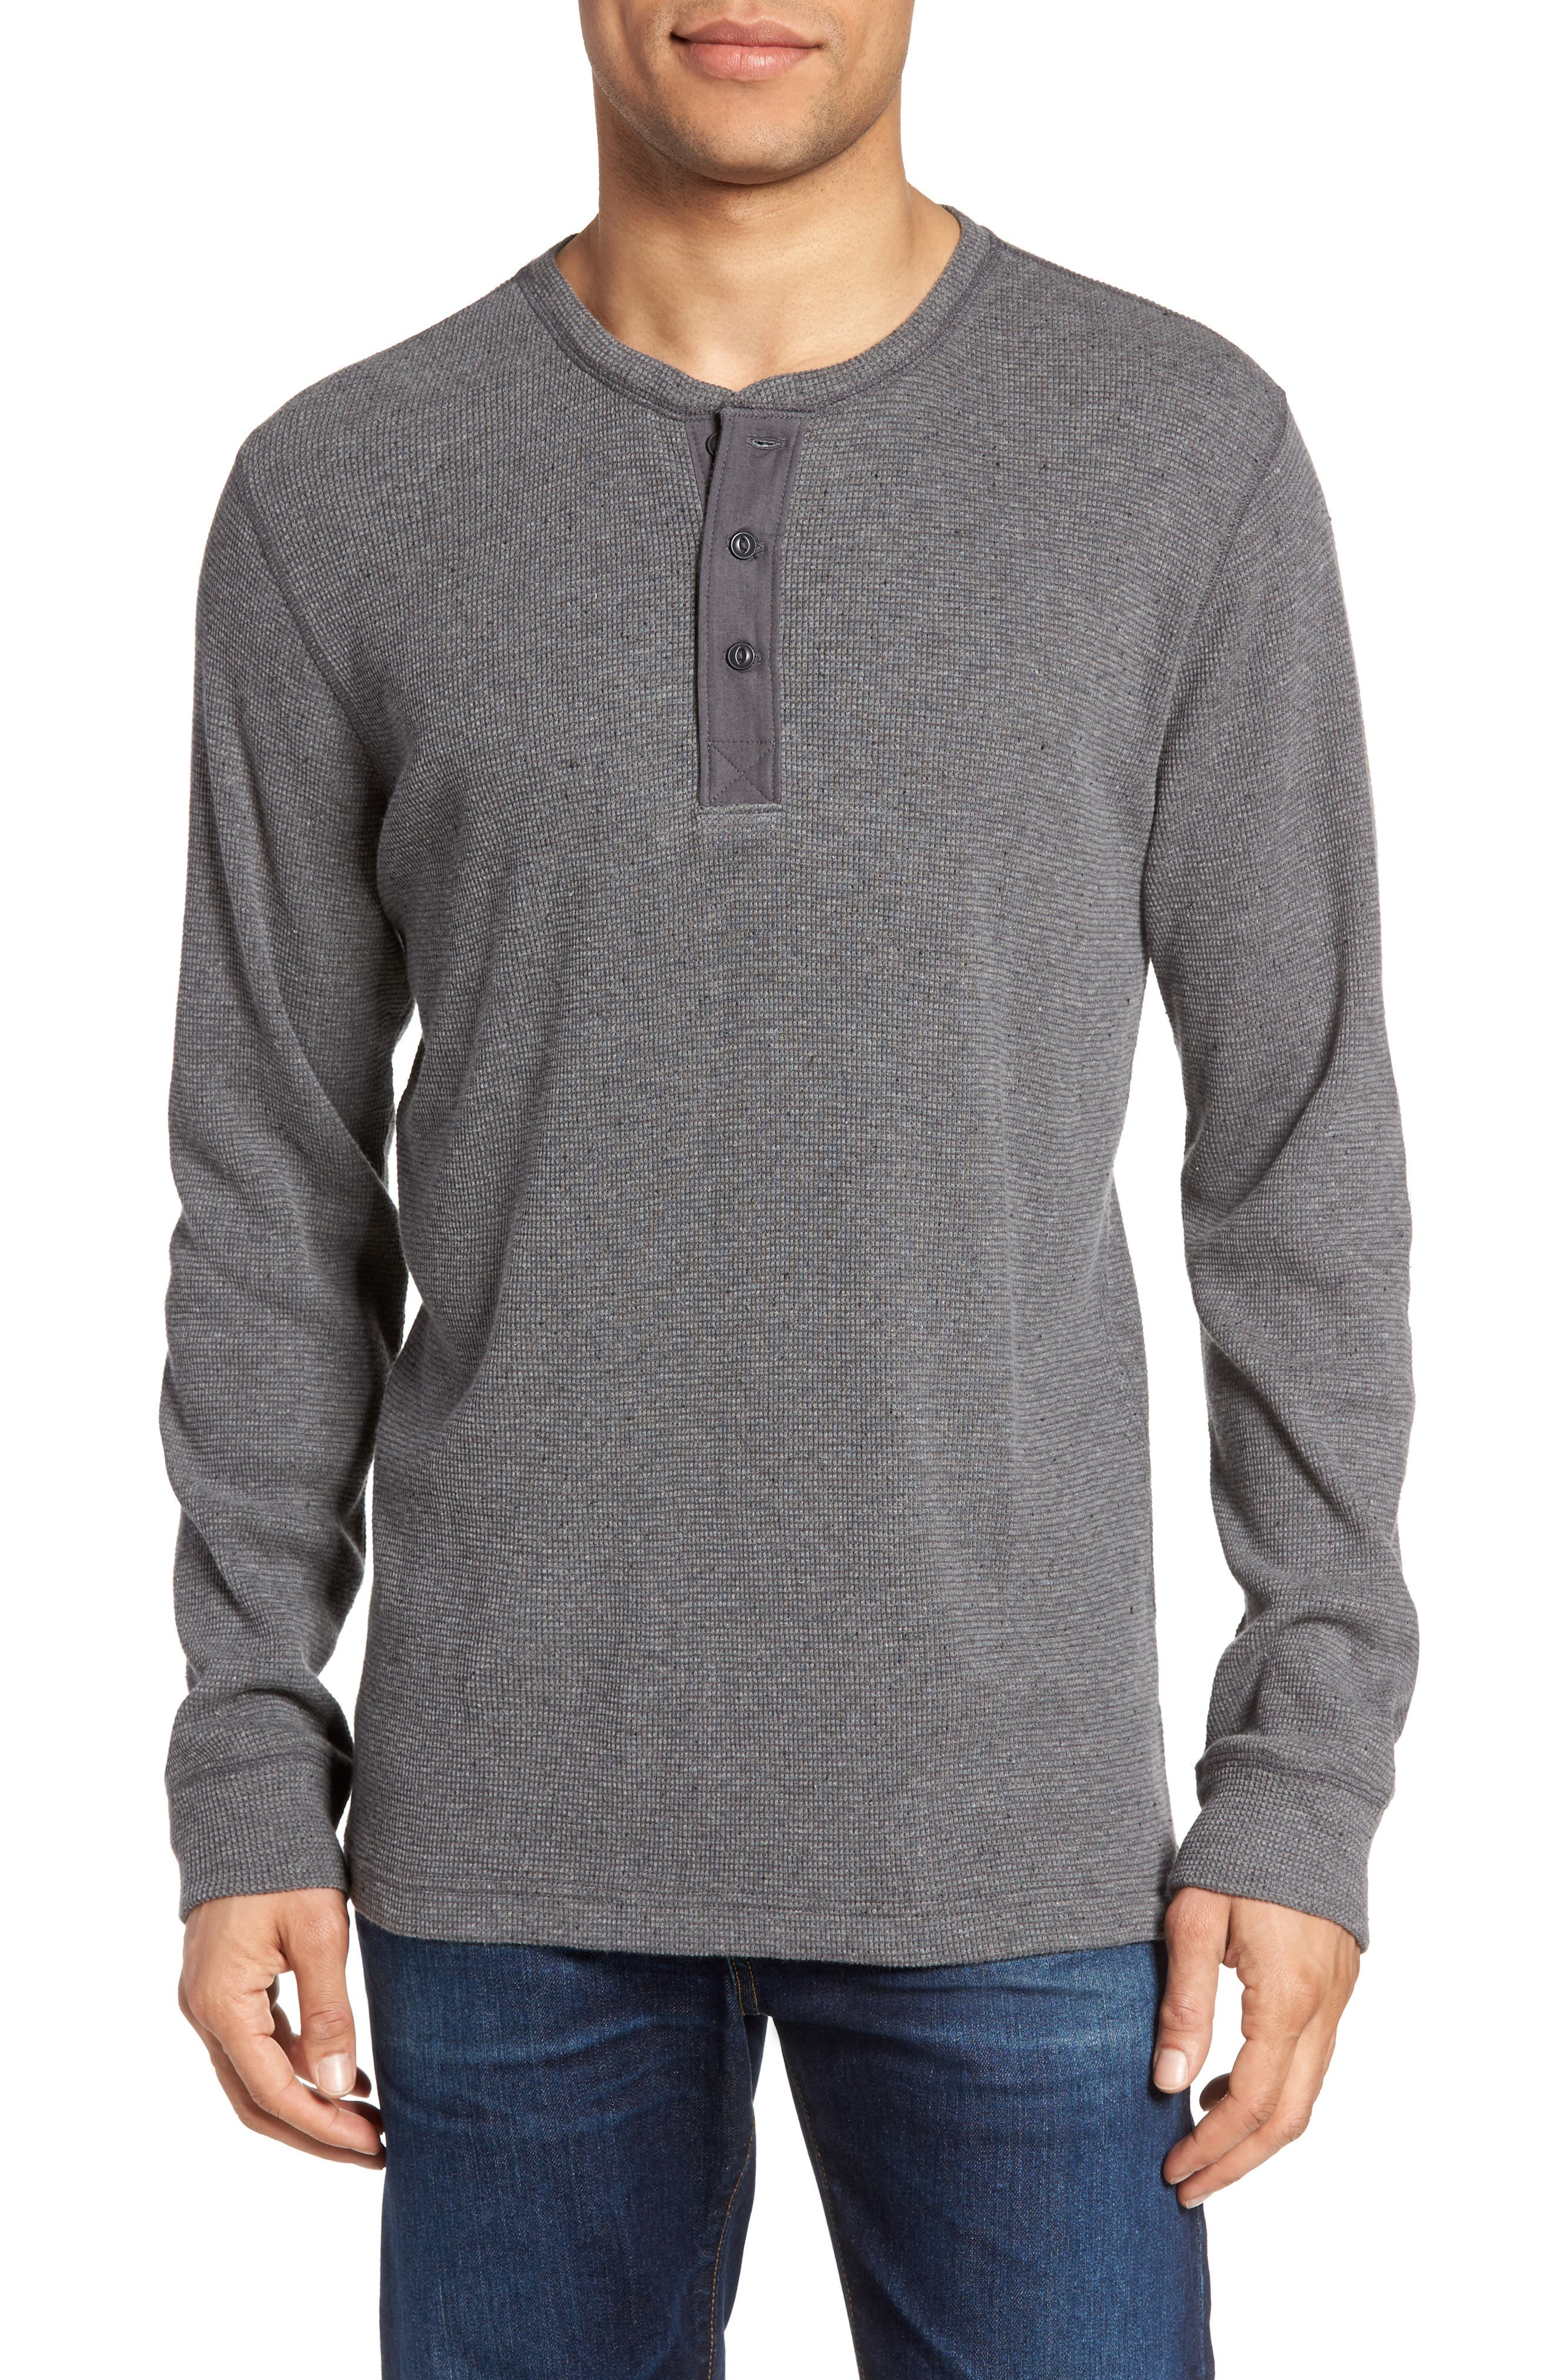 Nordstrom Men's Shop Waffle Knit Thermal Henley